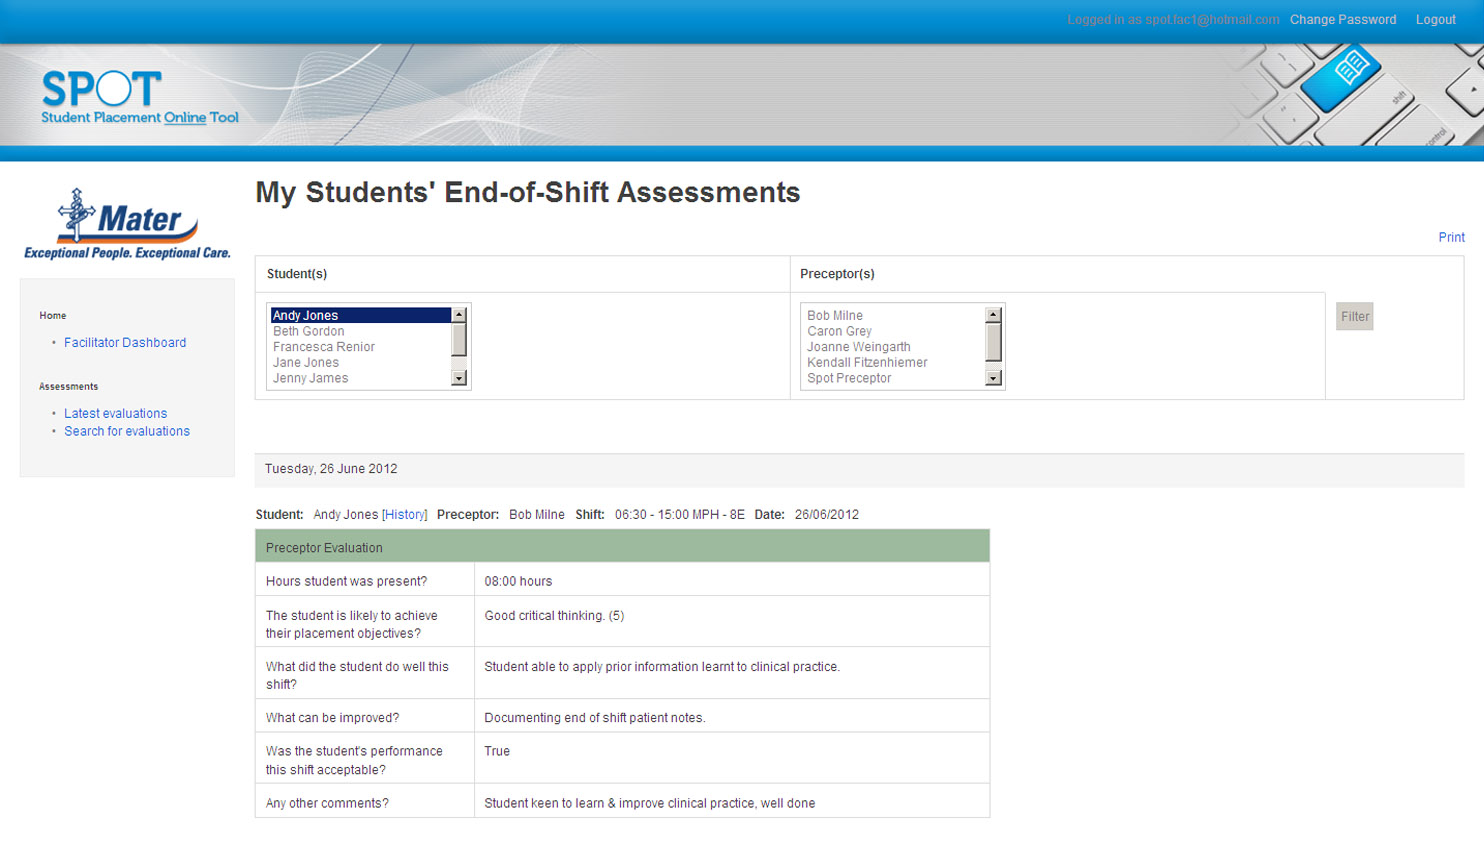 SPOT Student Placement Online Tool - For Education Providers